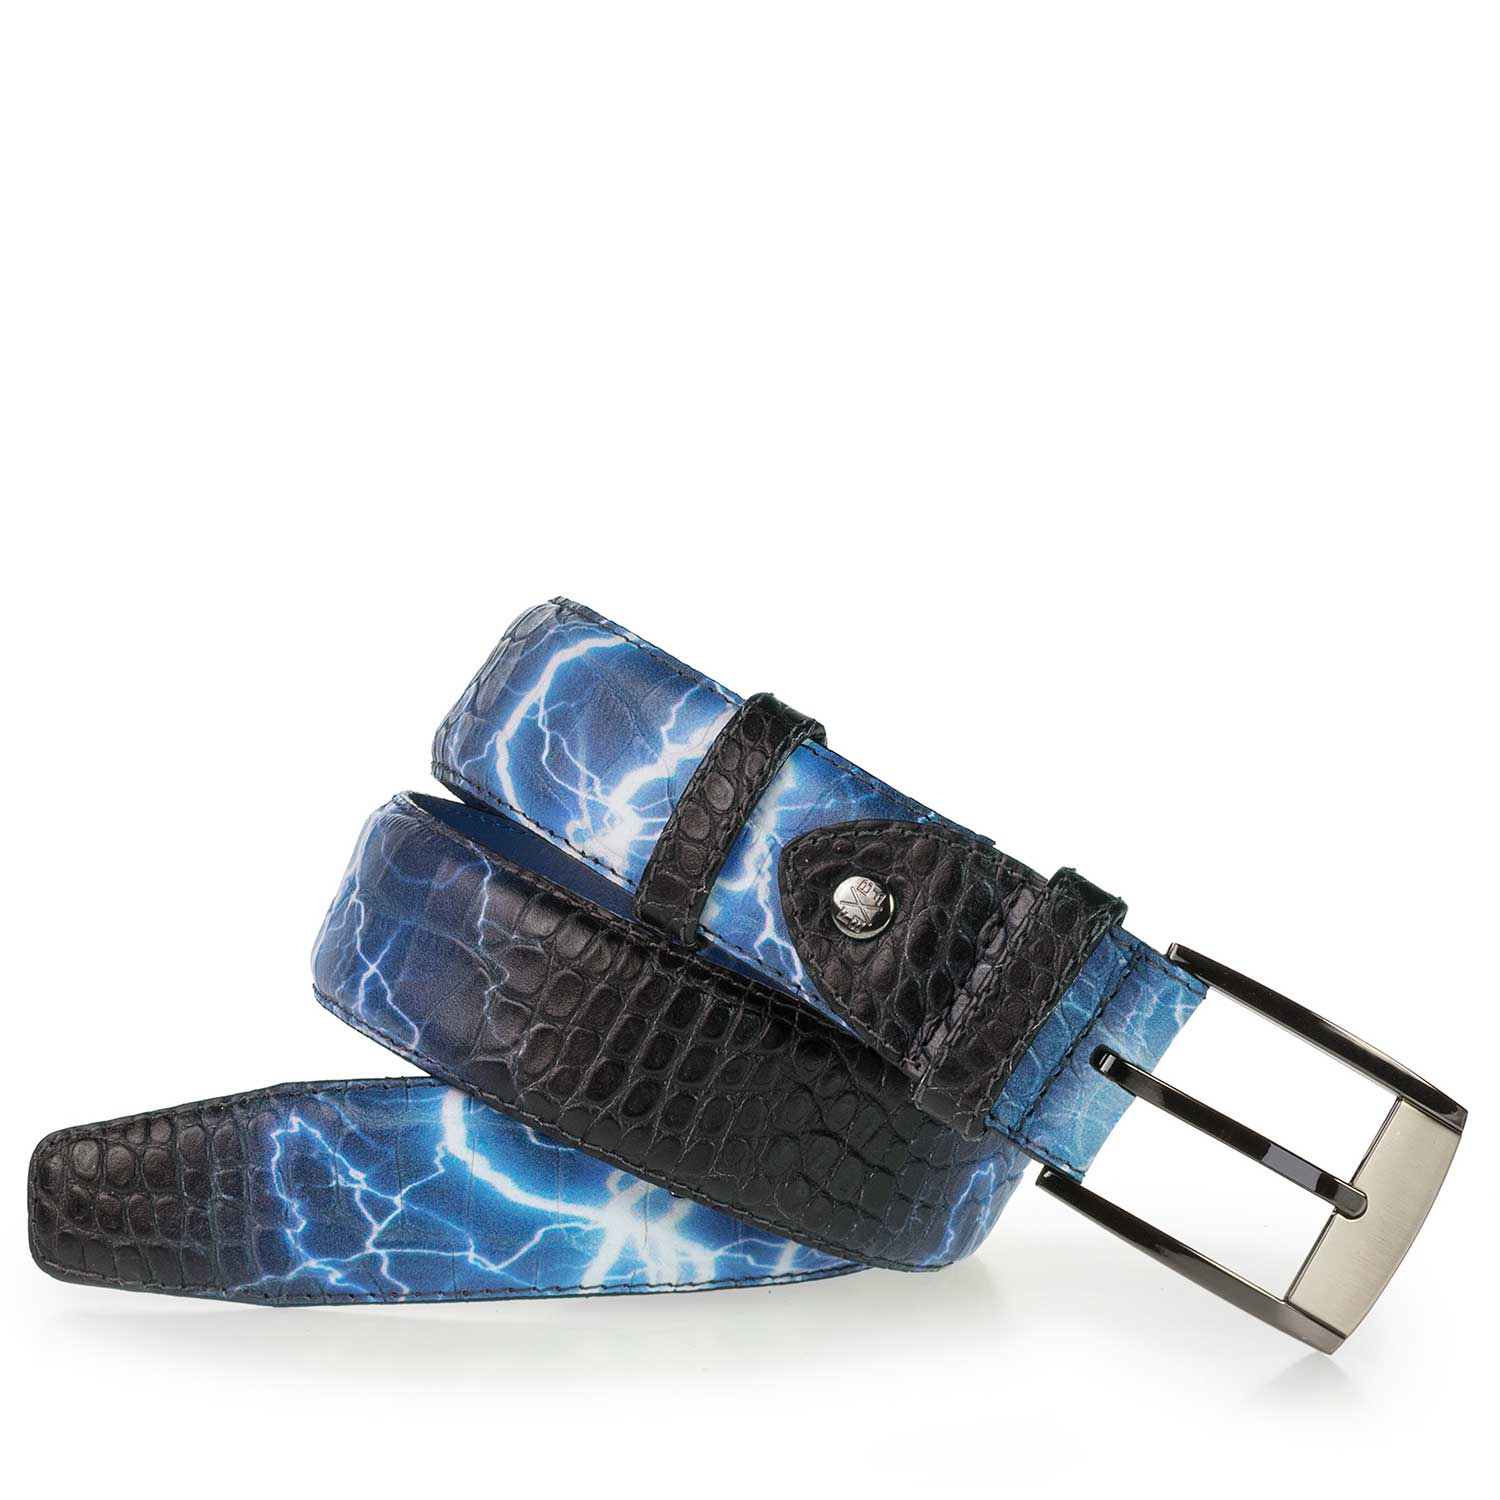 75180/25 - Premium blue leather belt with flash print